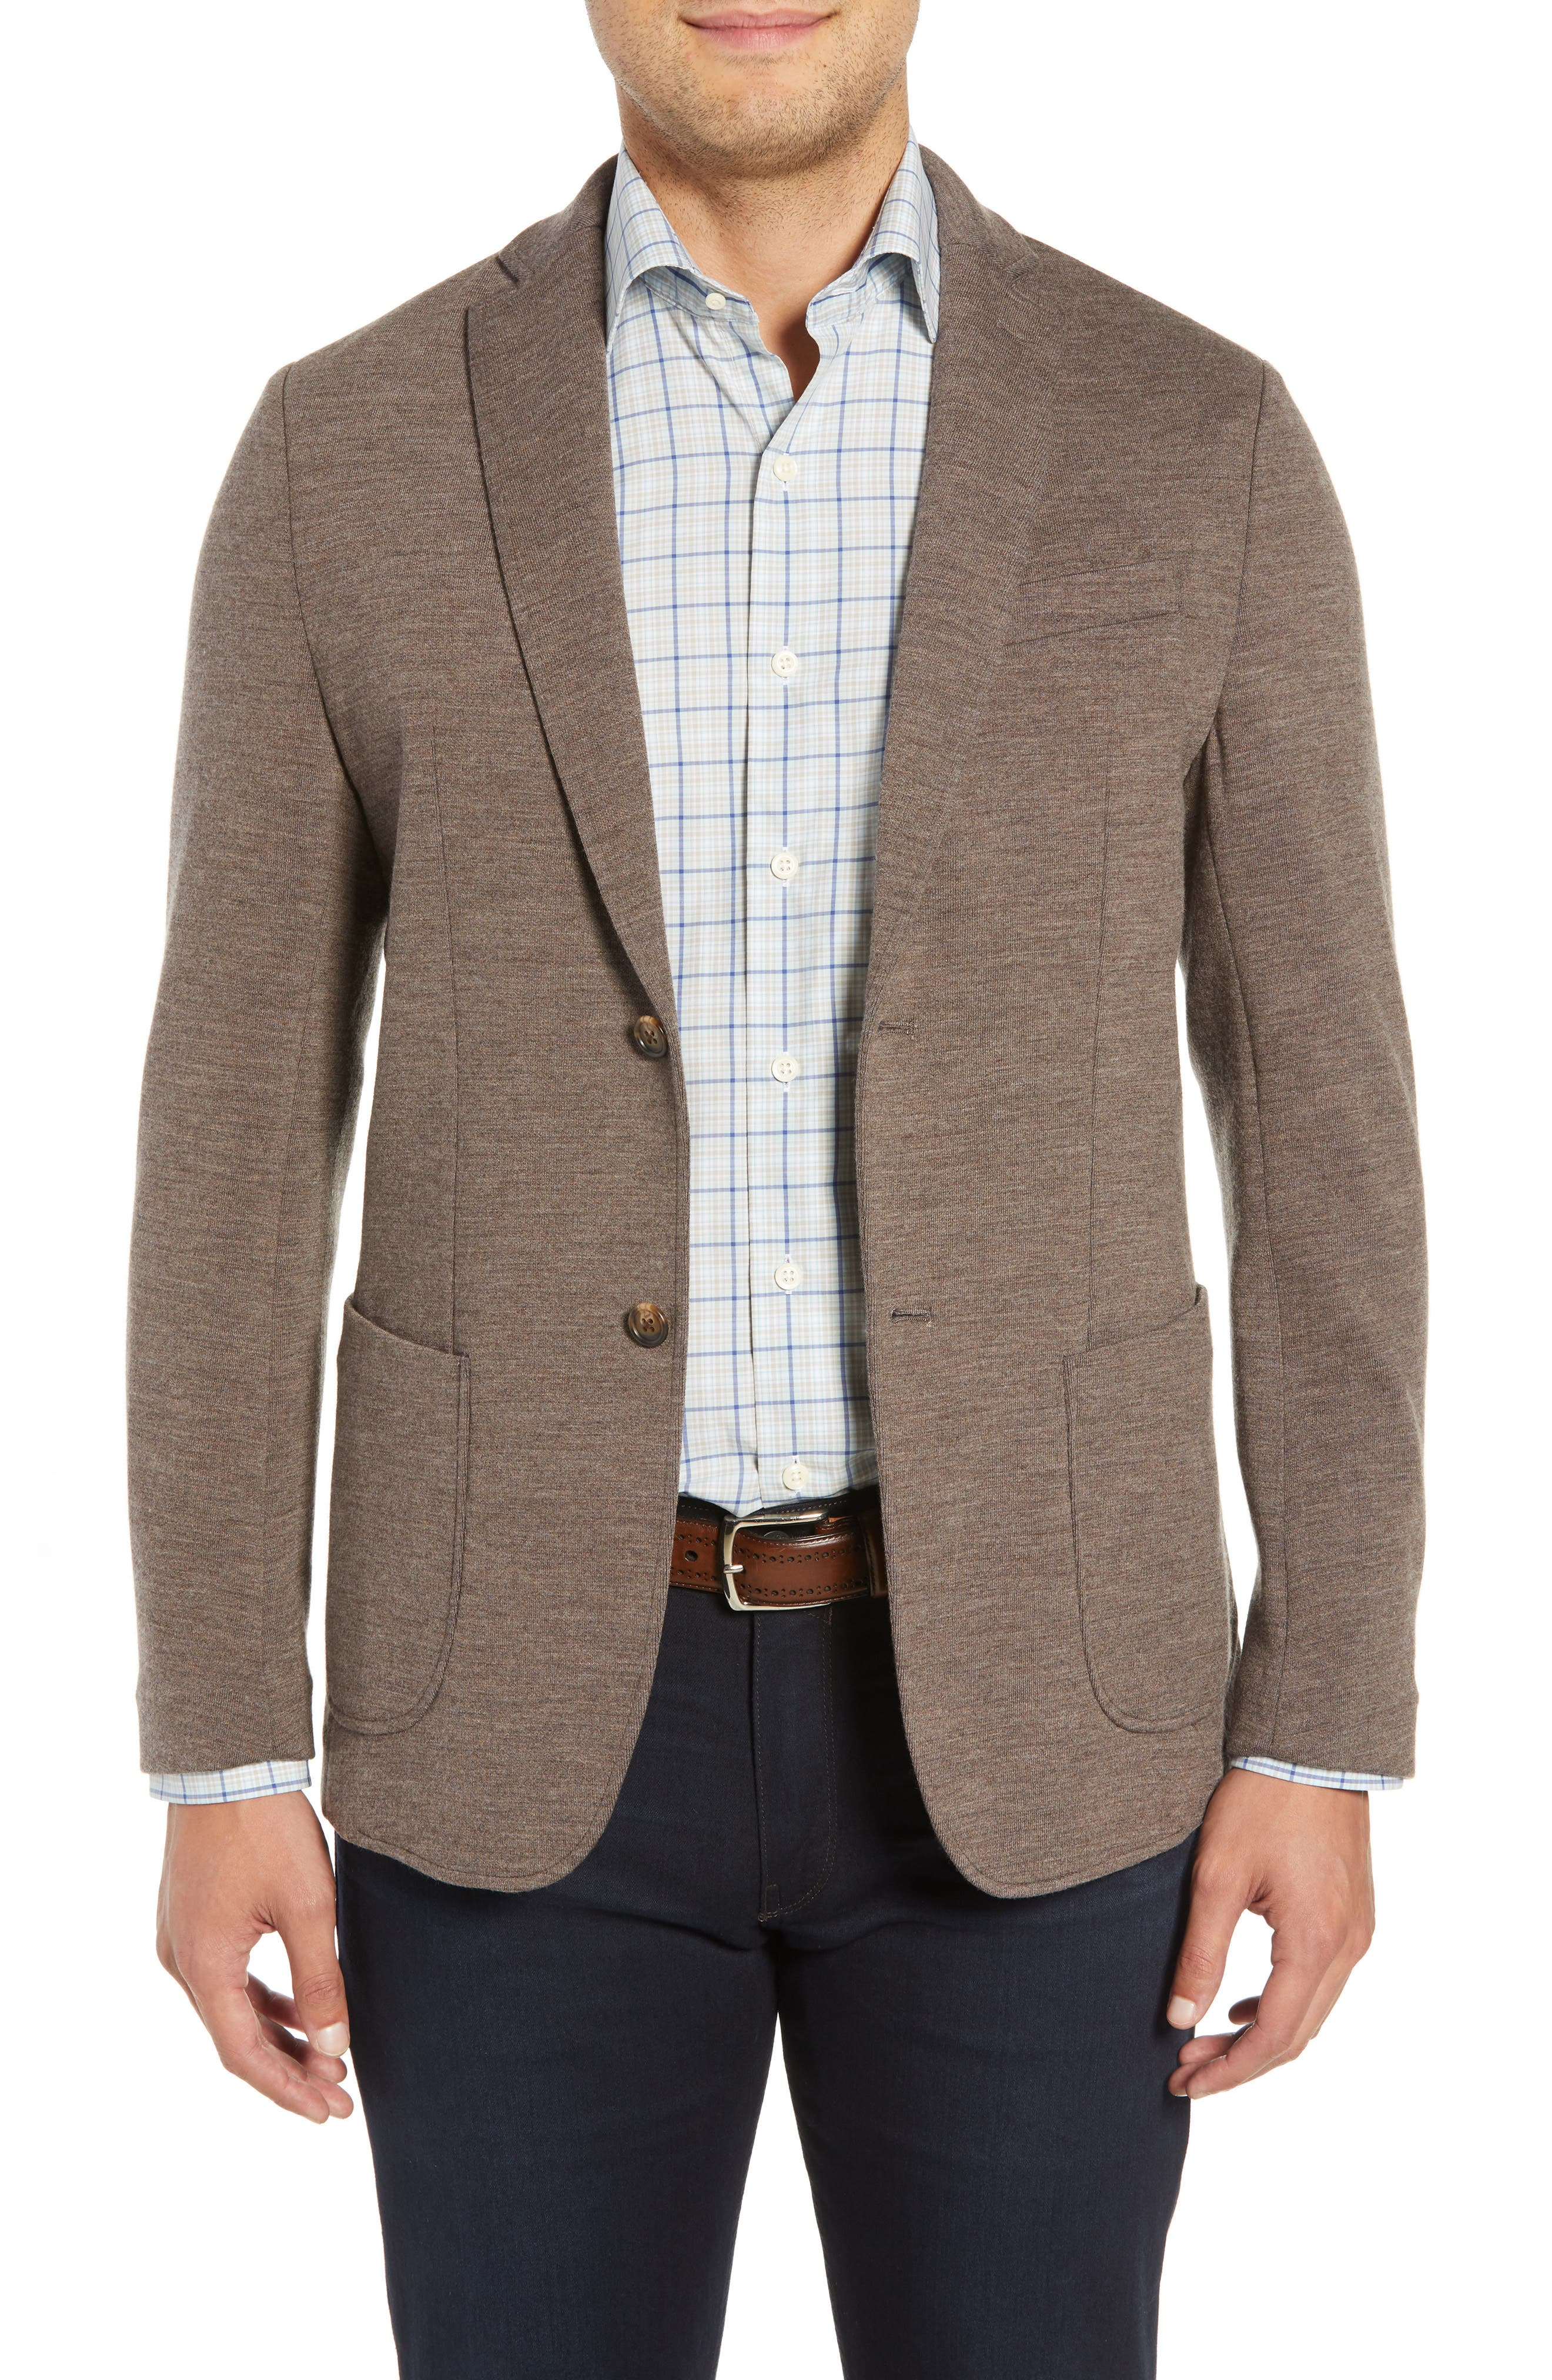 Crown Comfort Knit Blazer,                         Main,                         color, COBBLESTONE